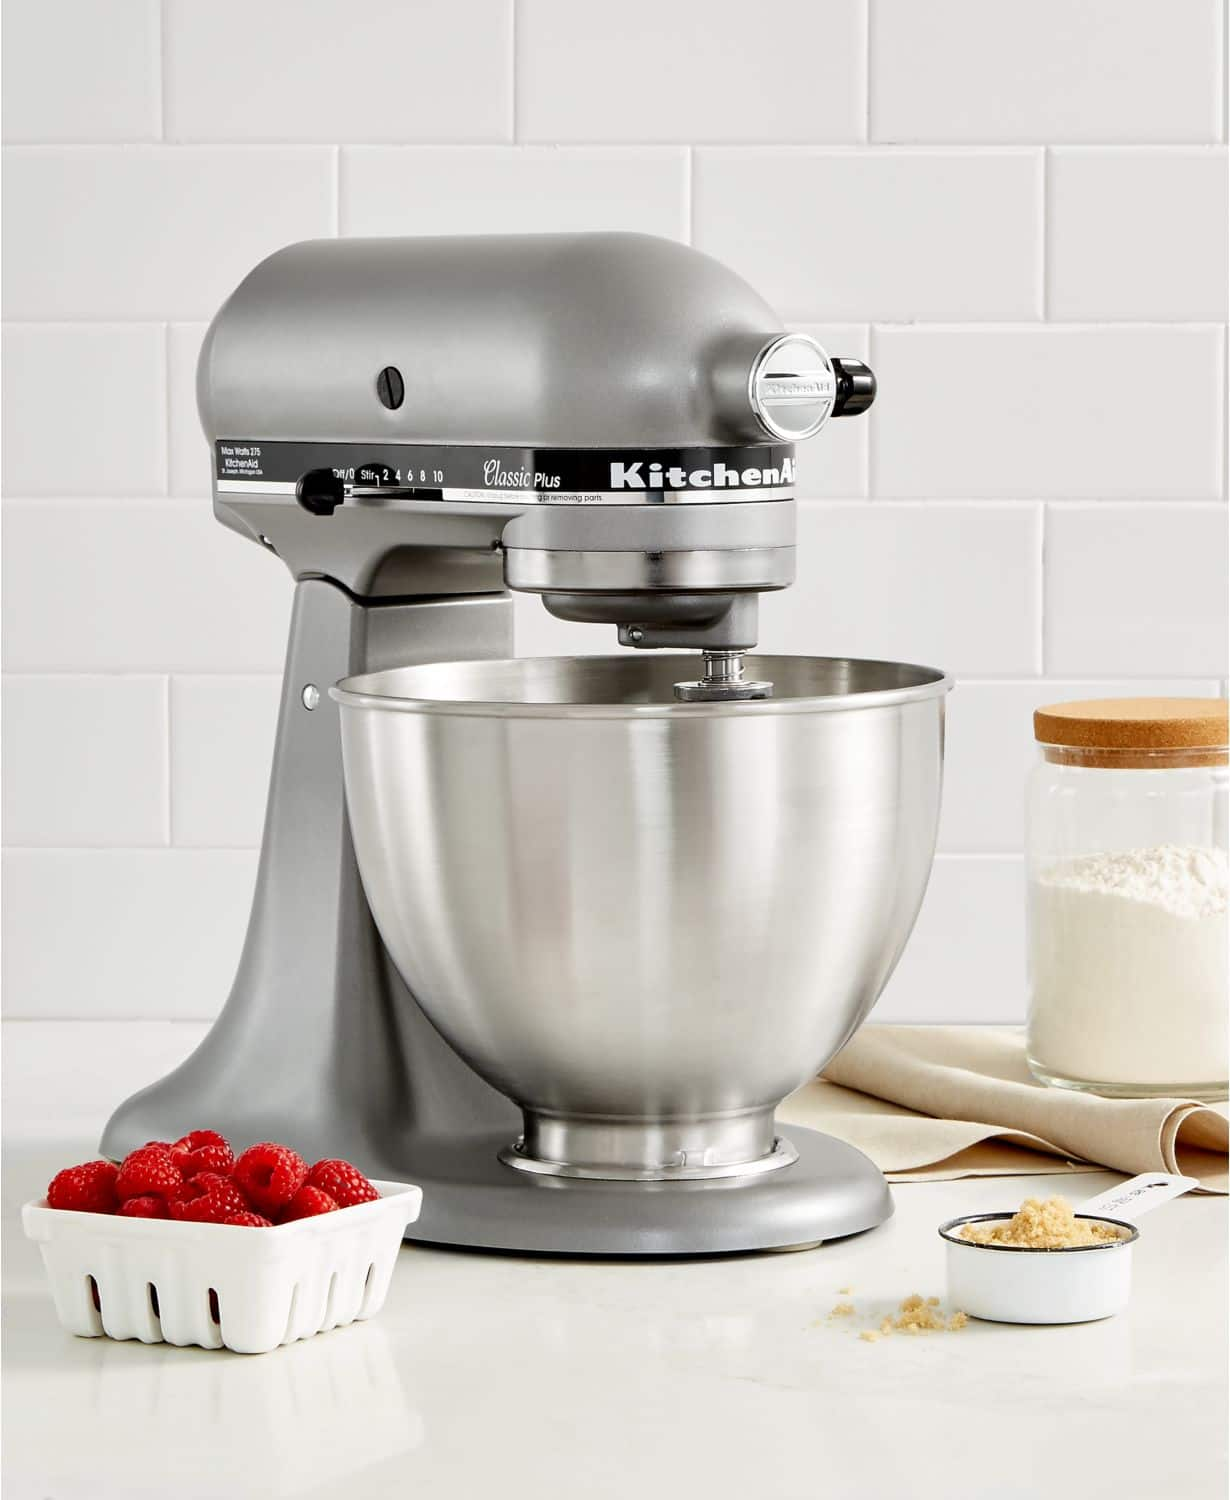 09f3c210f2e KitchenAid KSM75SL Classic Plus 4.5-Qt. Tilt-Head Stand Mixer ...